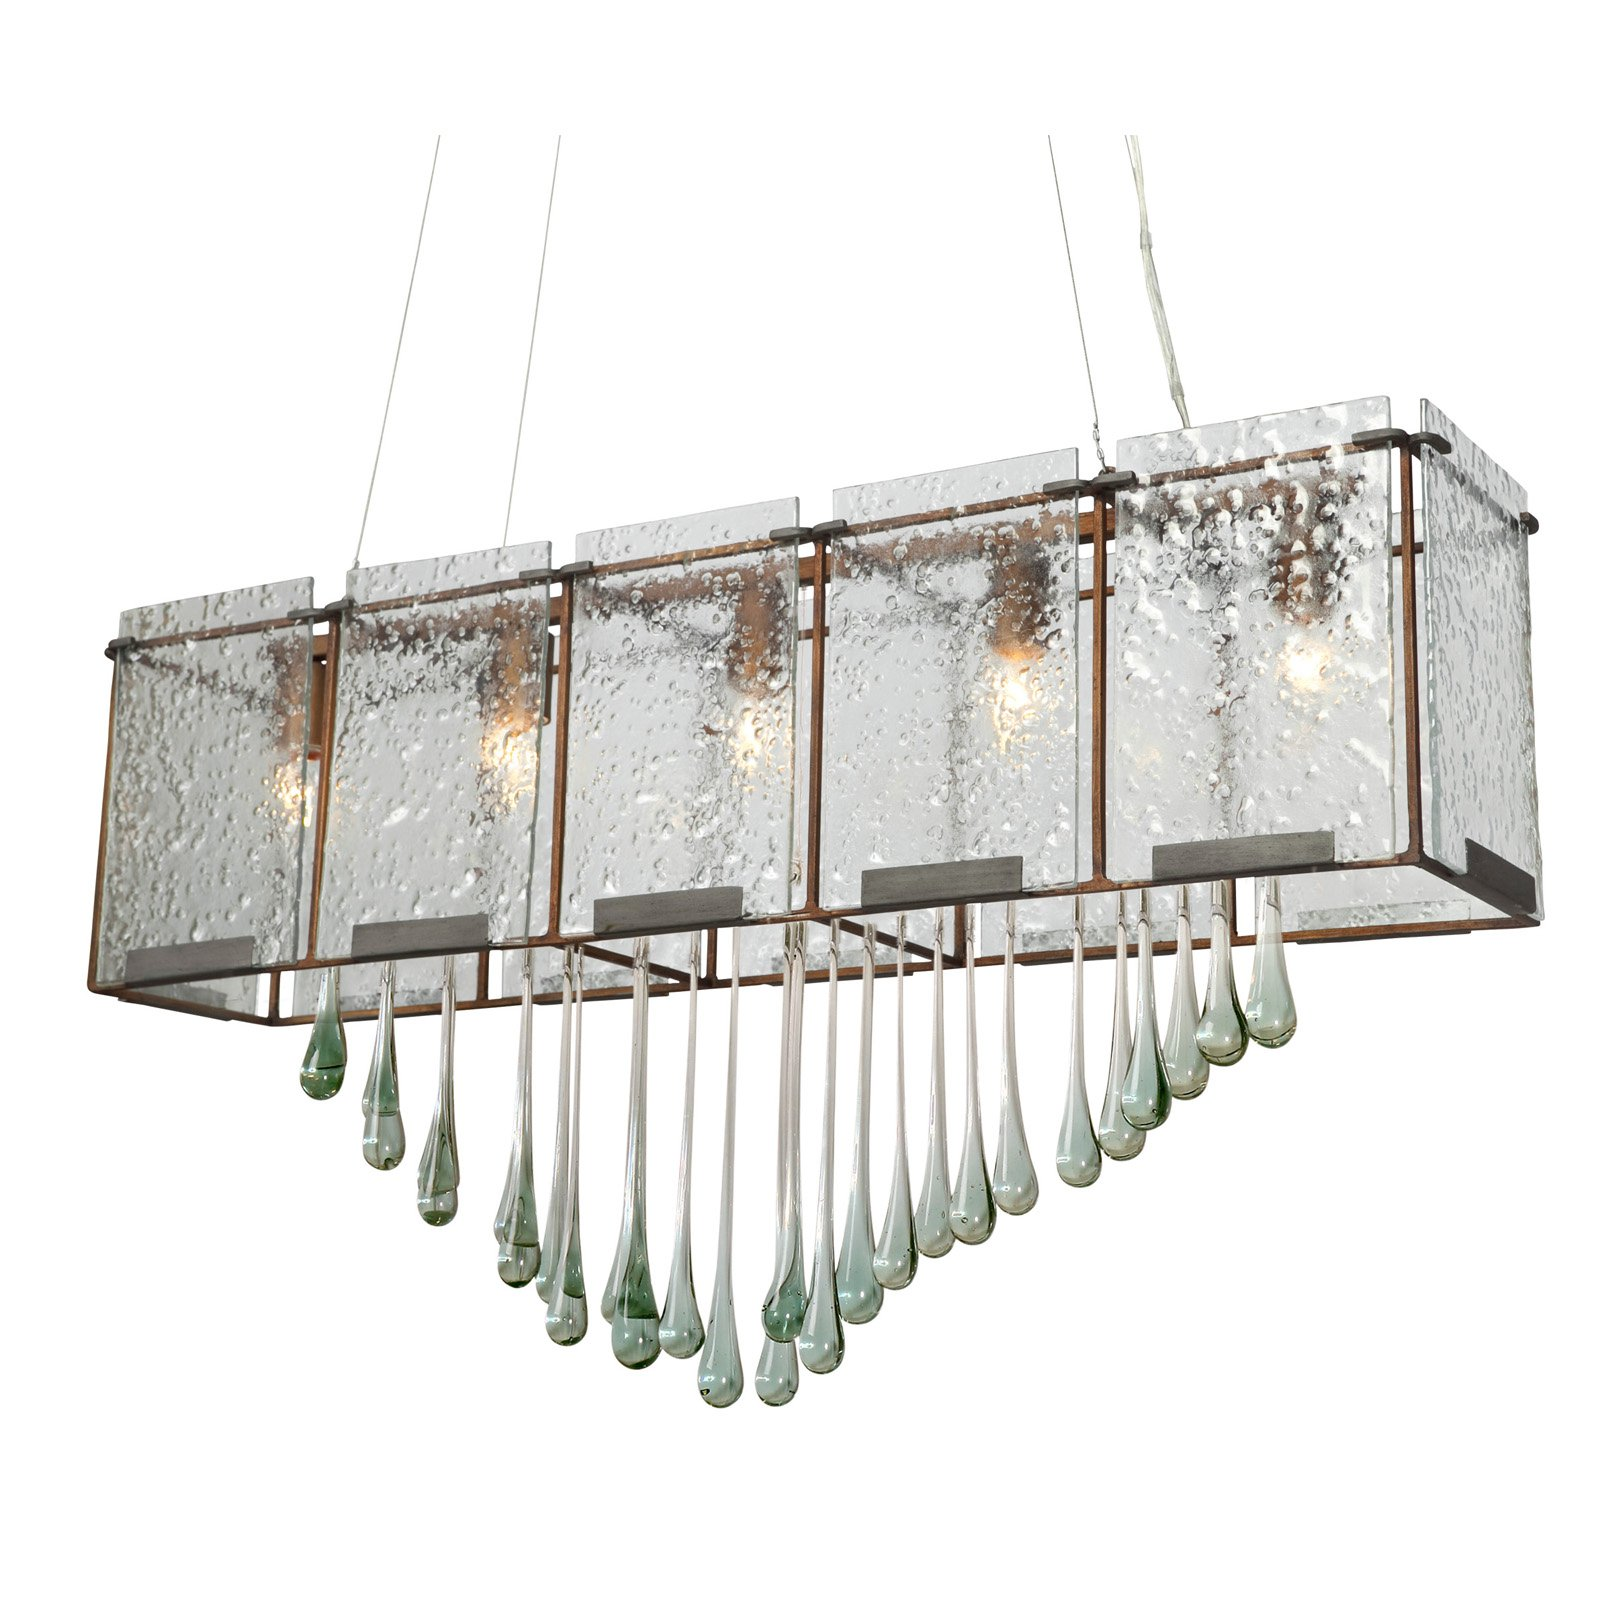 Varaluz 160N05H Rain Linear Pendant with Drops - 36.75W in.